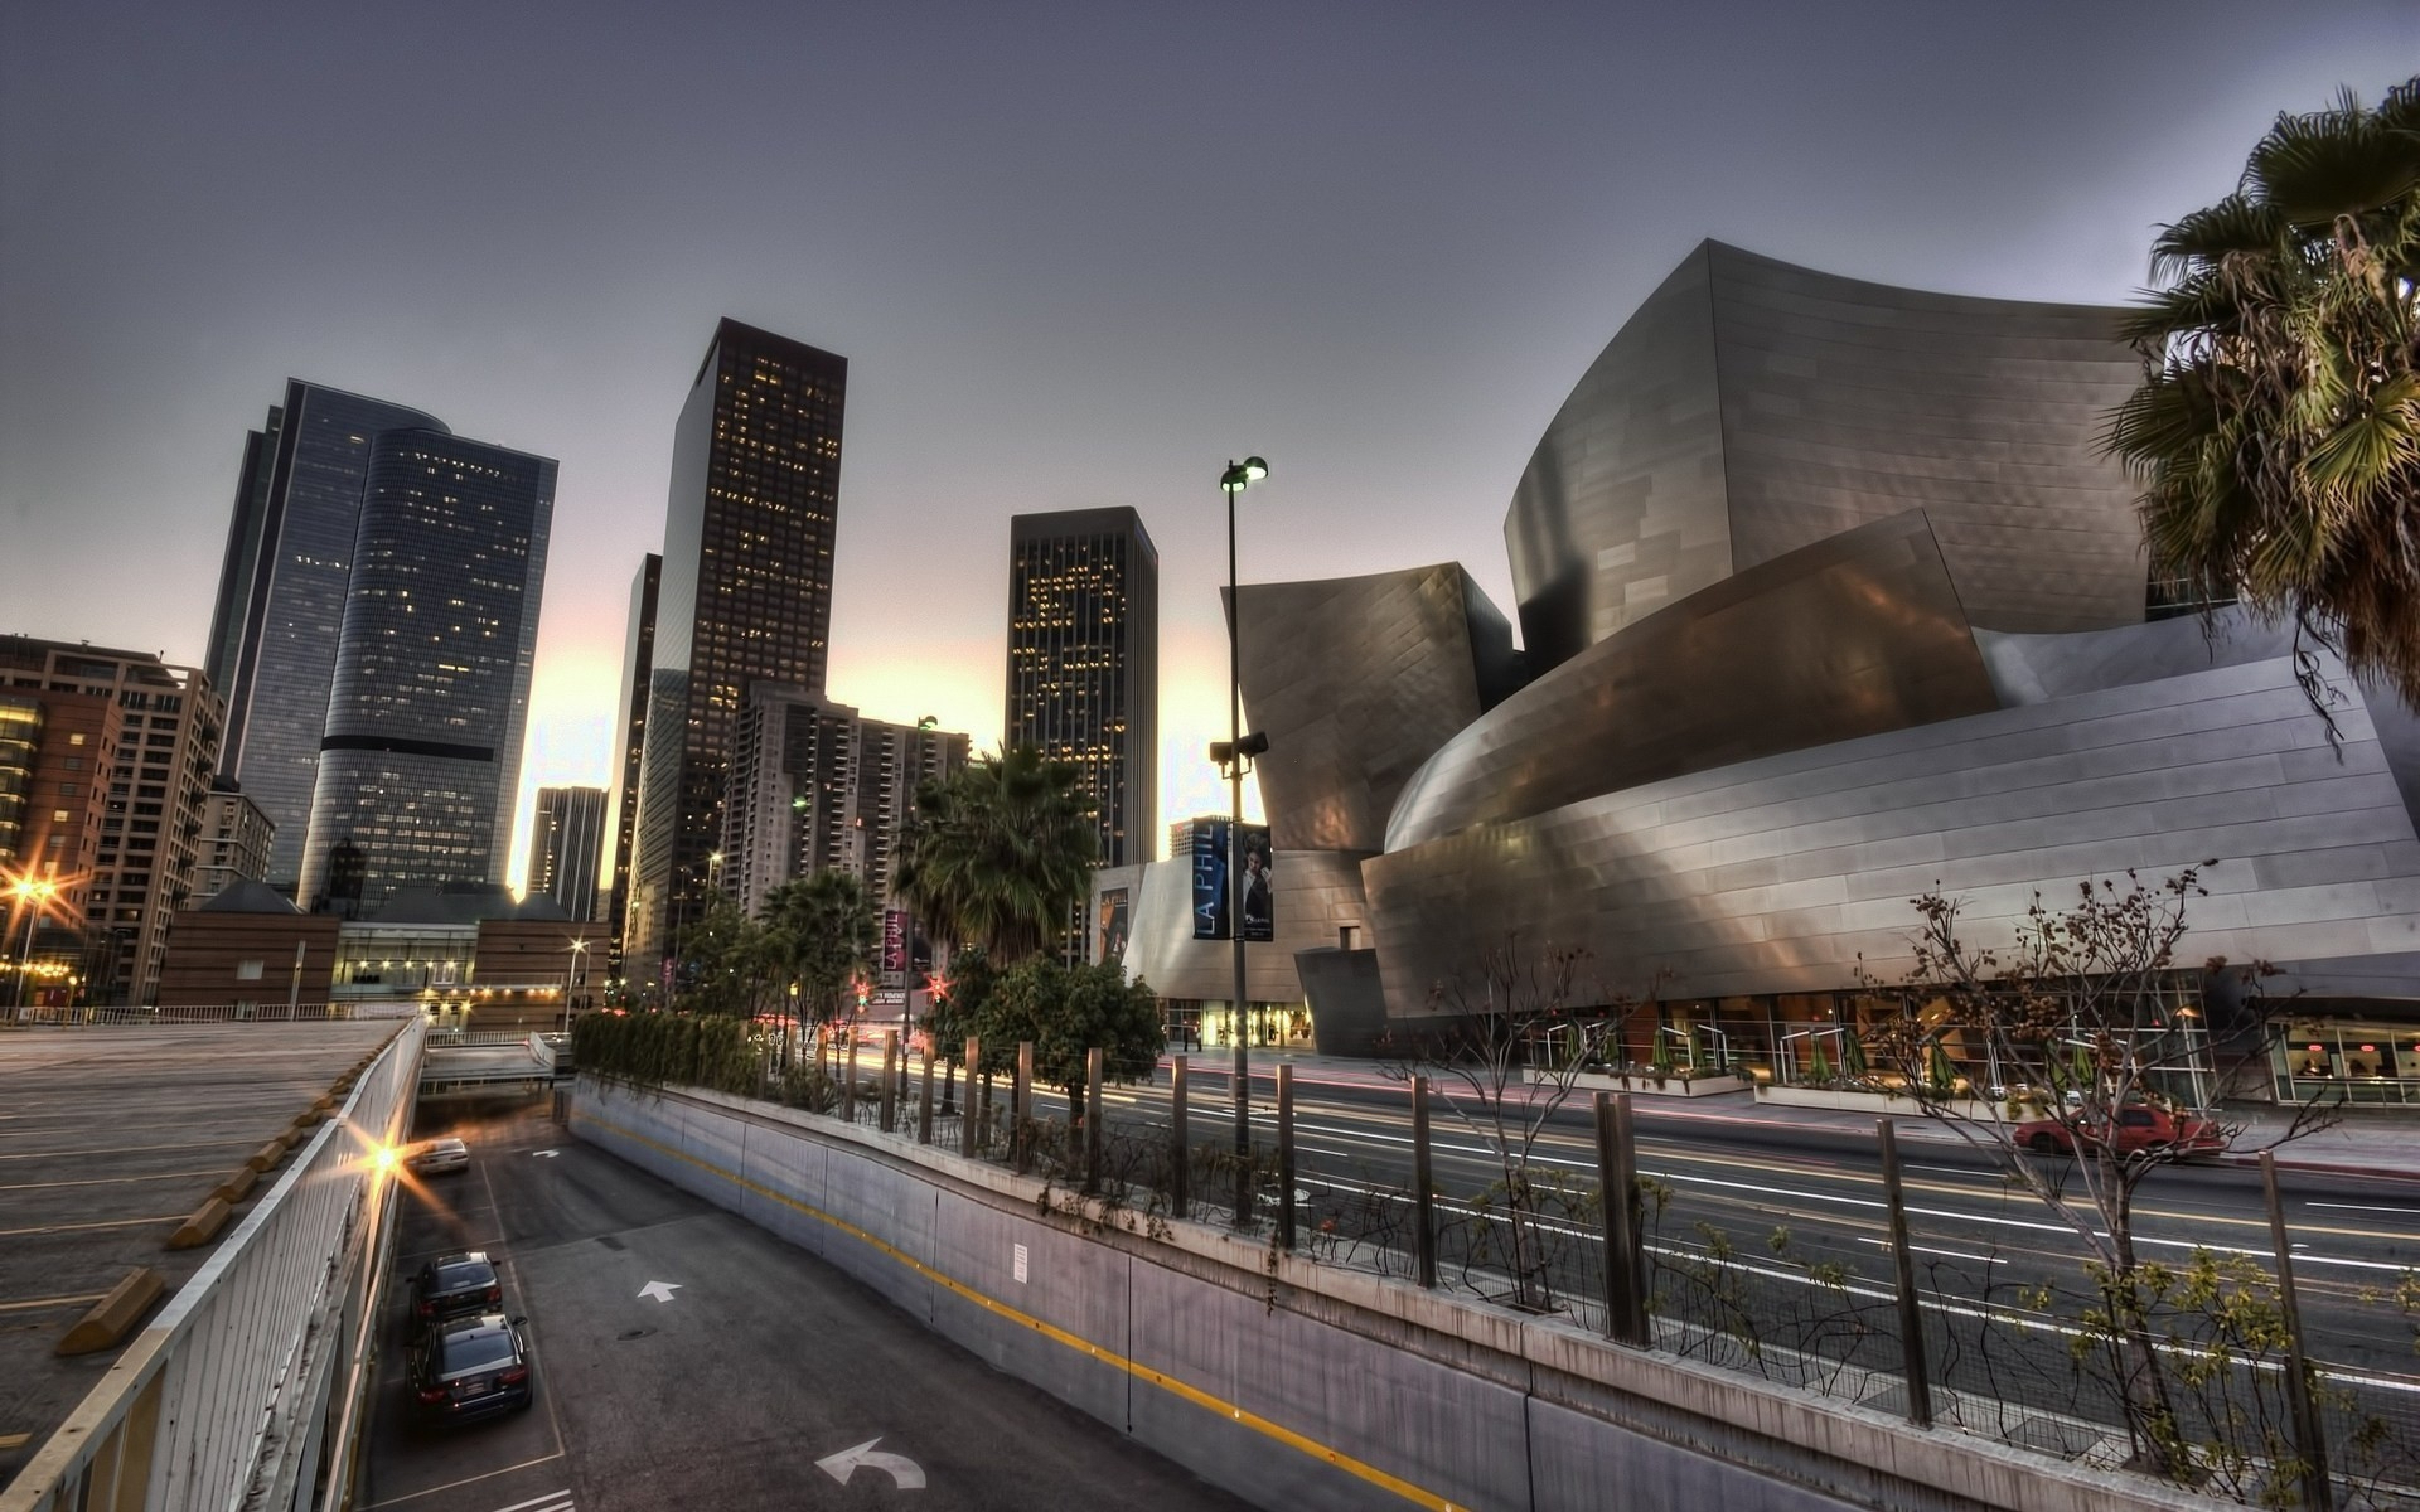 3840x2400 Wallpaper walt disney concert hall los angeles california 3840x2400